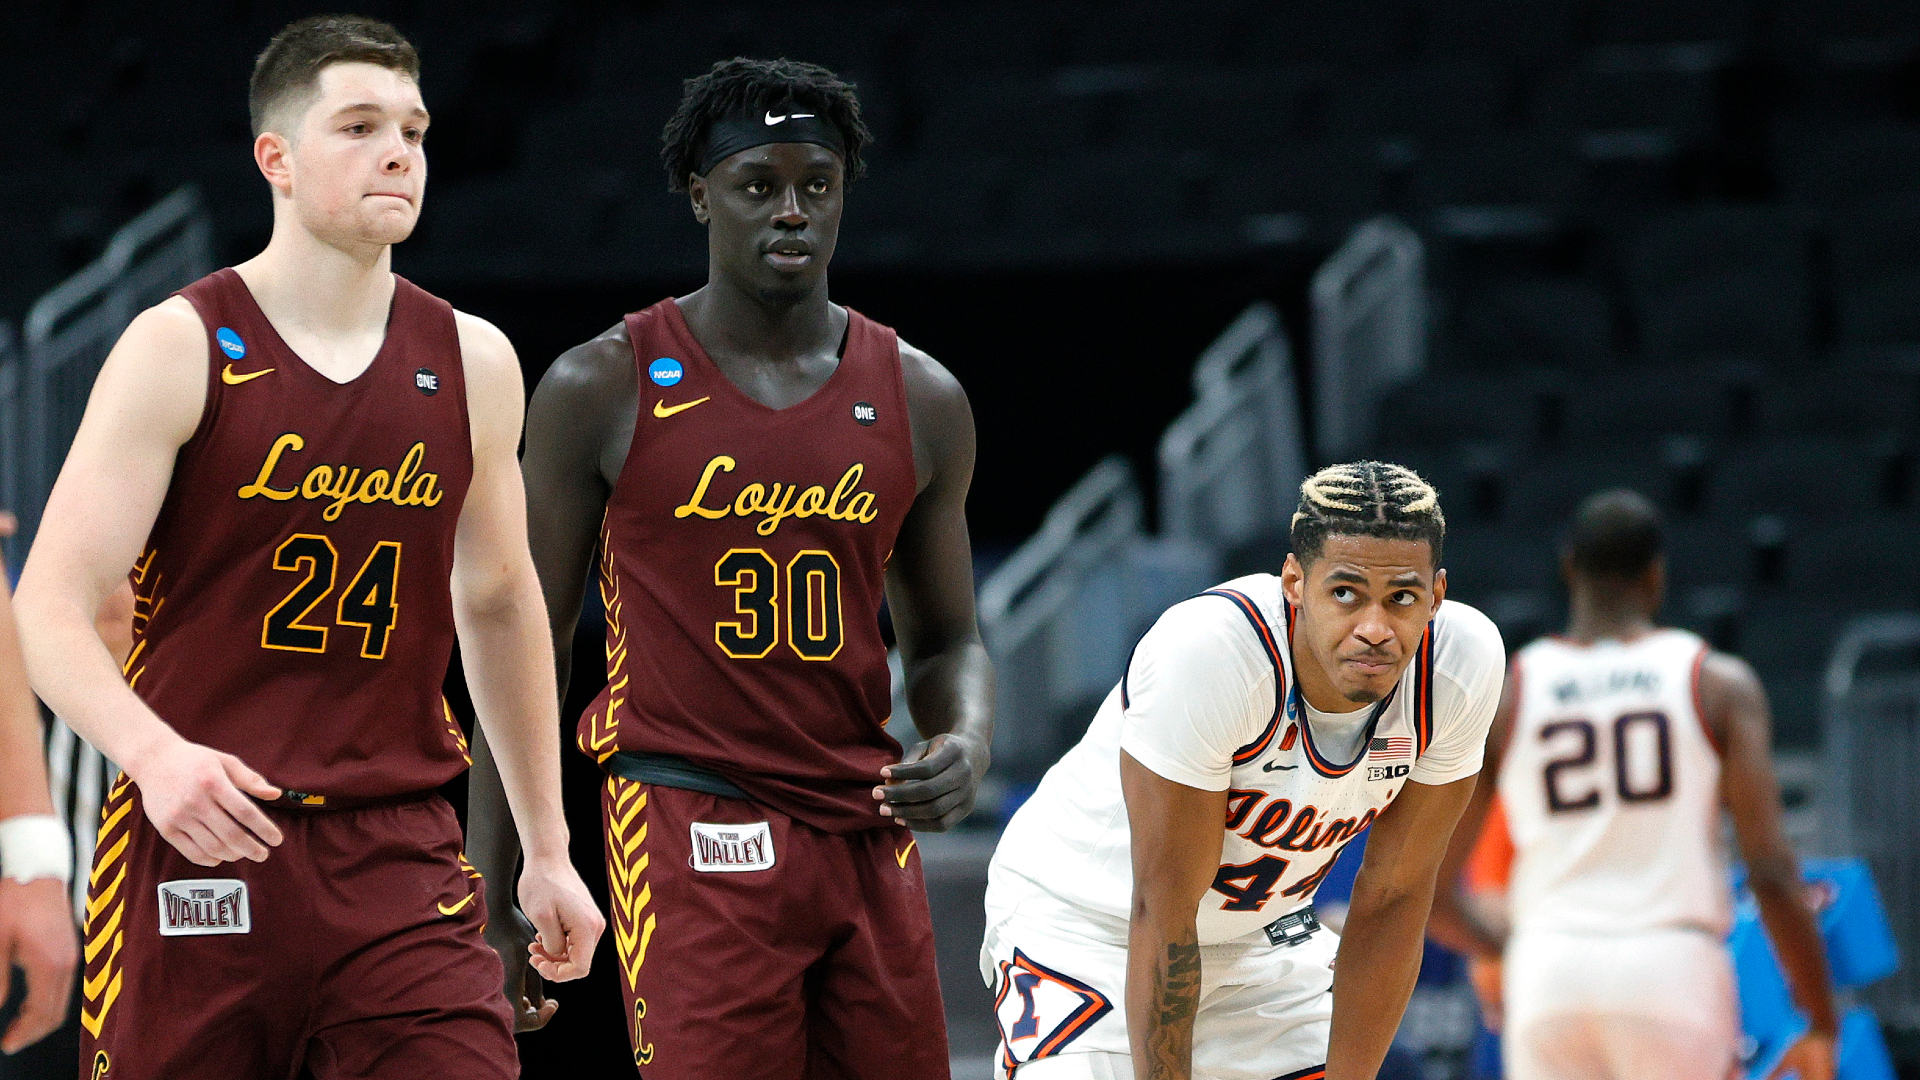 Committee's seeding decision didn't eliminate 1-seed Illinois from March Madness — Loyola did